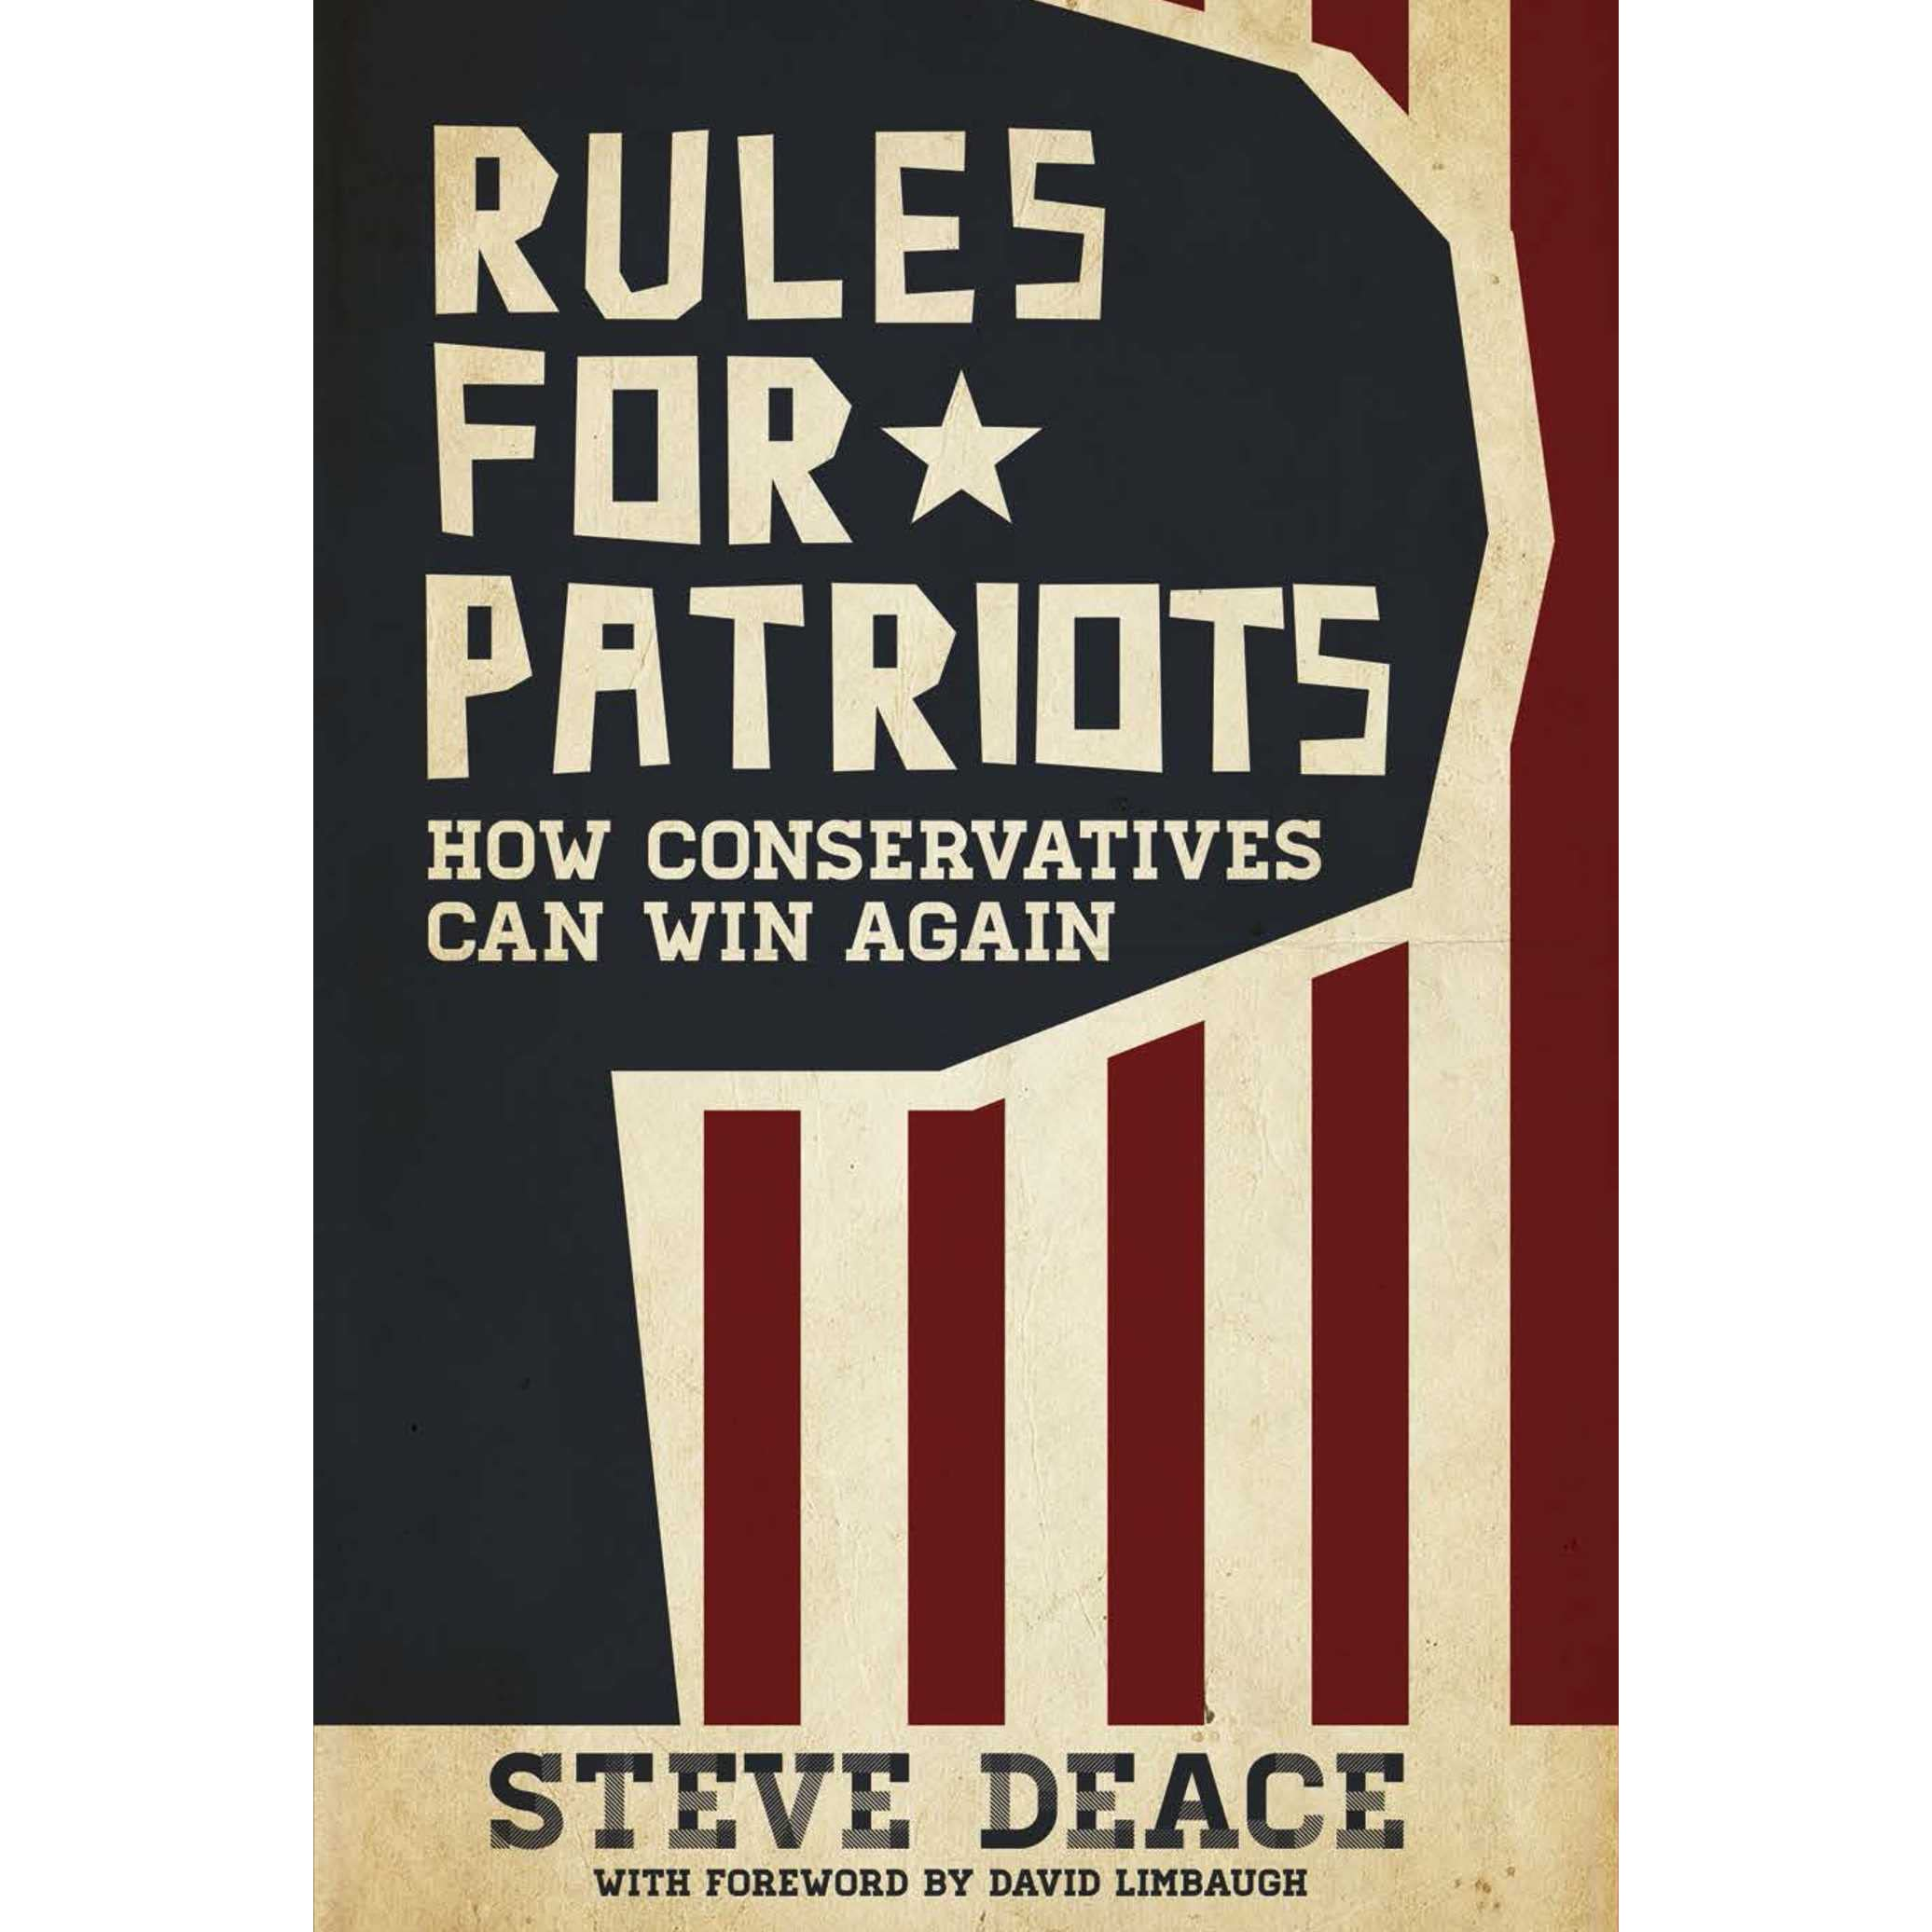 Rules for patriots how conservatives can win again by steve deace malvernweather Gallery